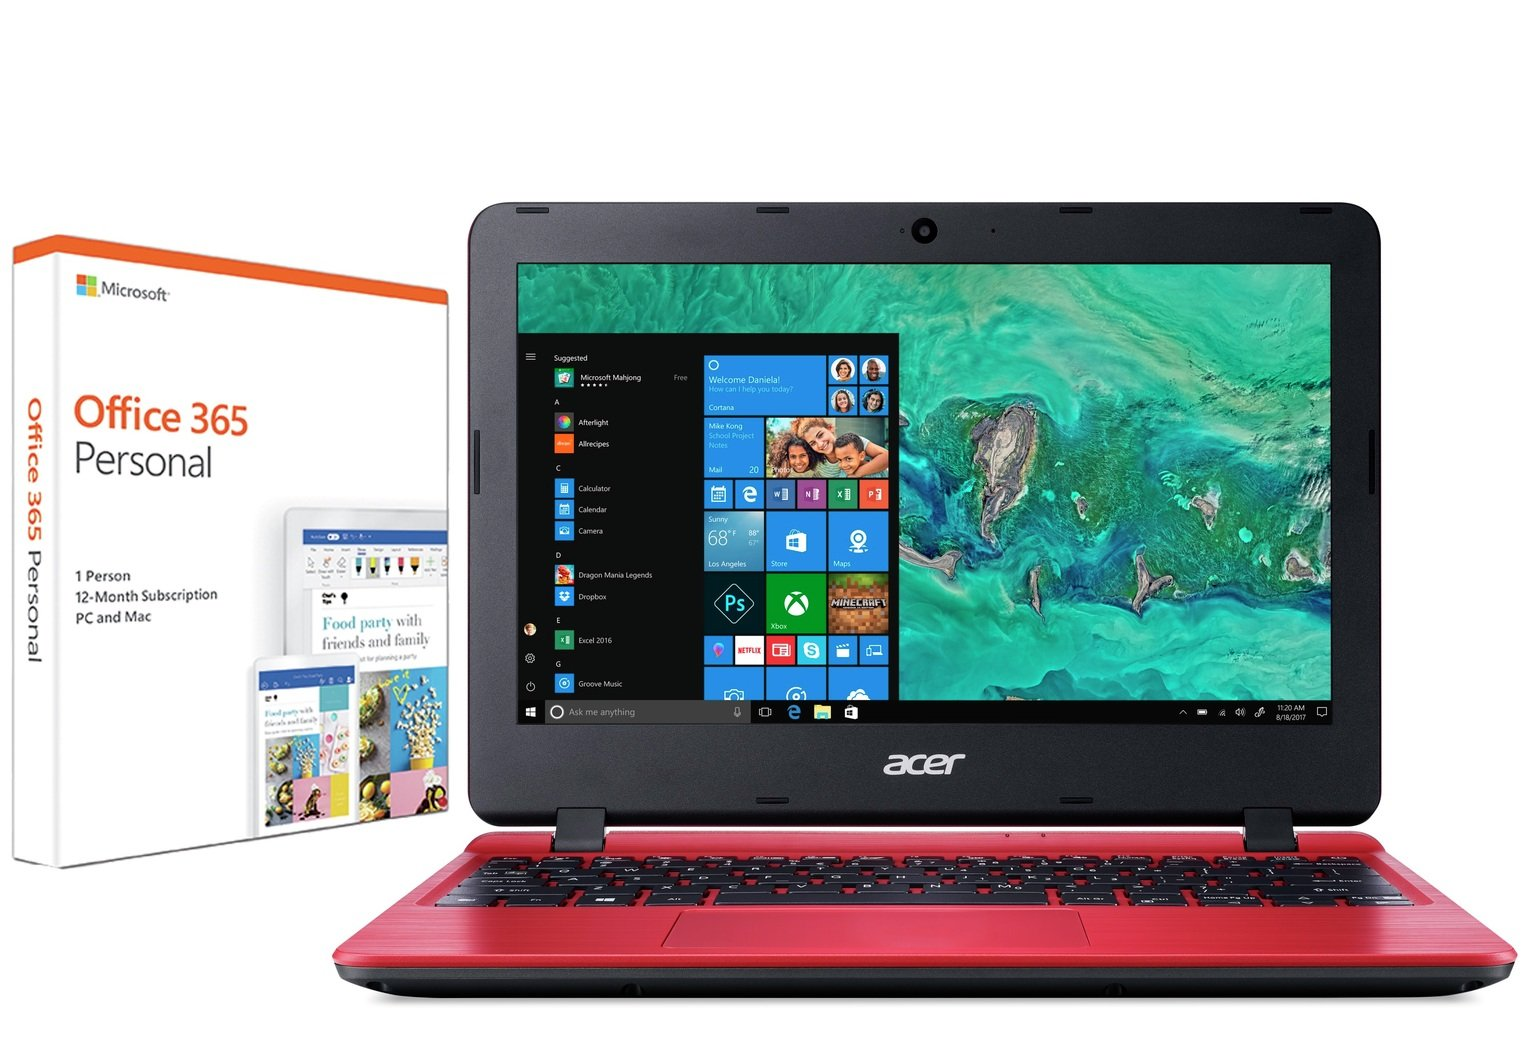 Acer Aspire 1 11 Inch Celeron 2GB 32GB Cloudbook - Red